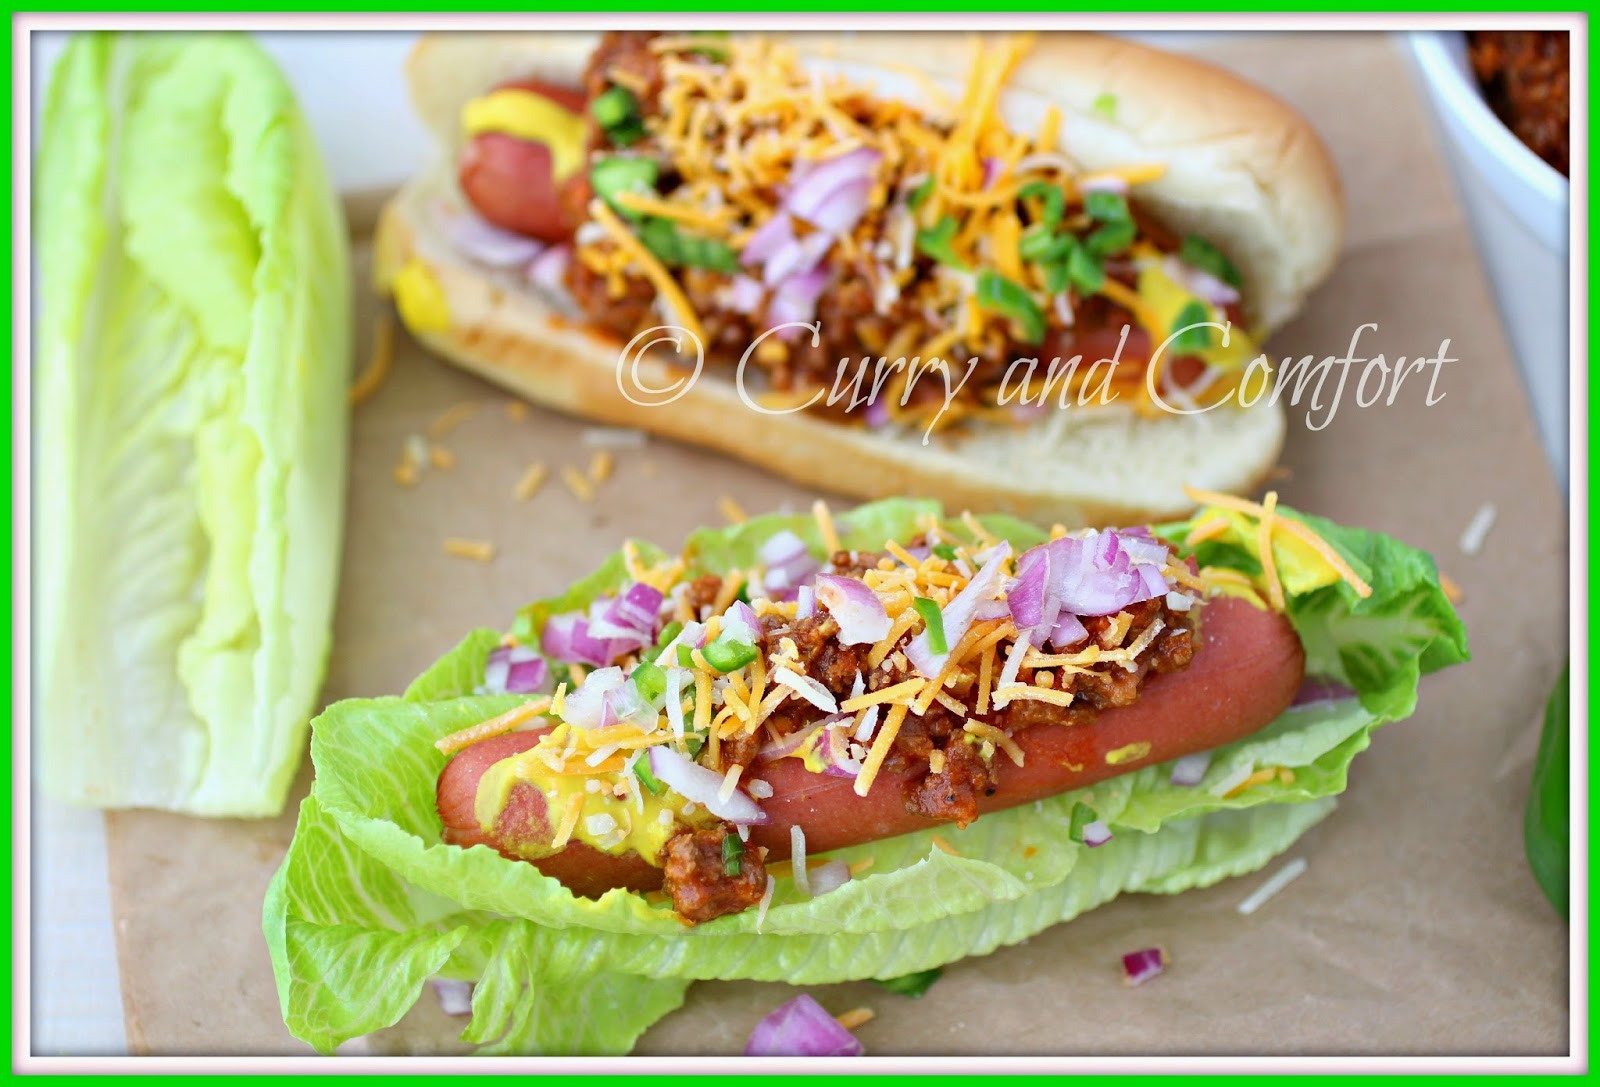 kitchen simmer chili dogs in a lettuce bun low carb. Black Bedroom Furniture Sets. Home Design Ideas